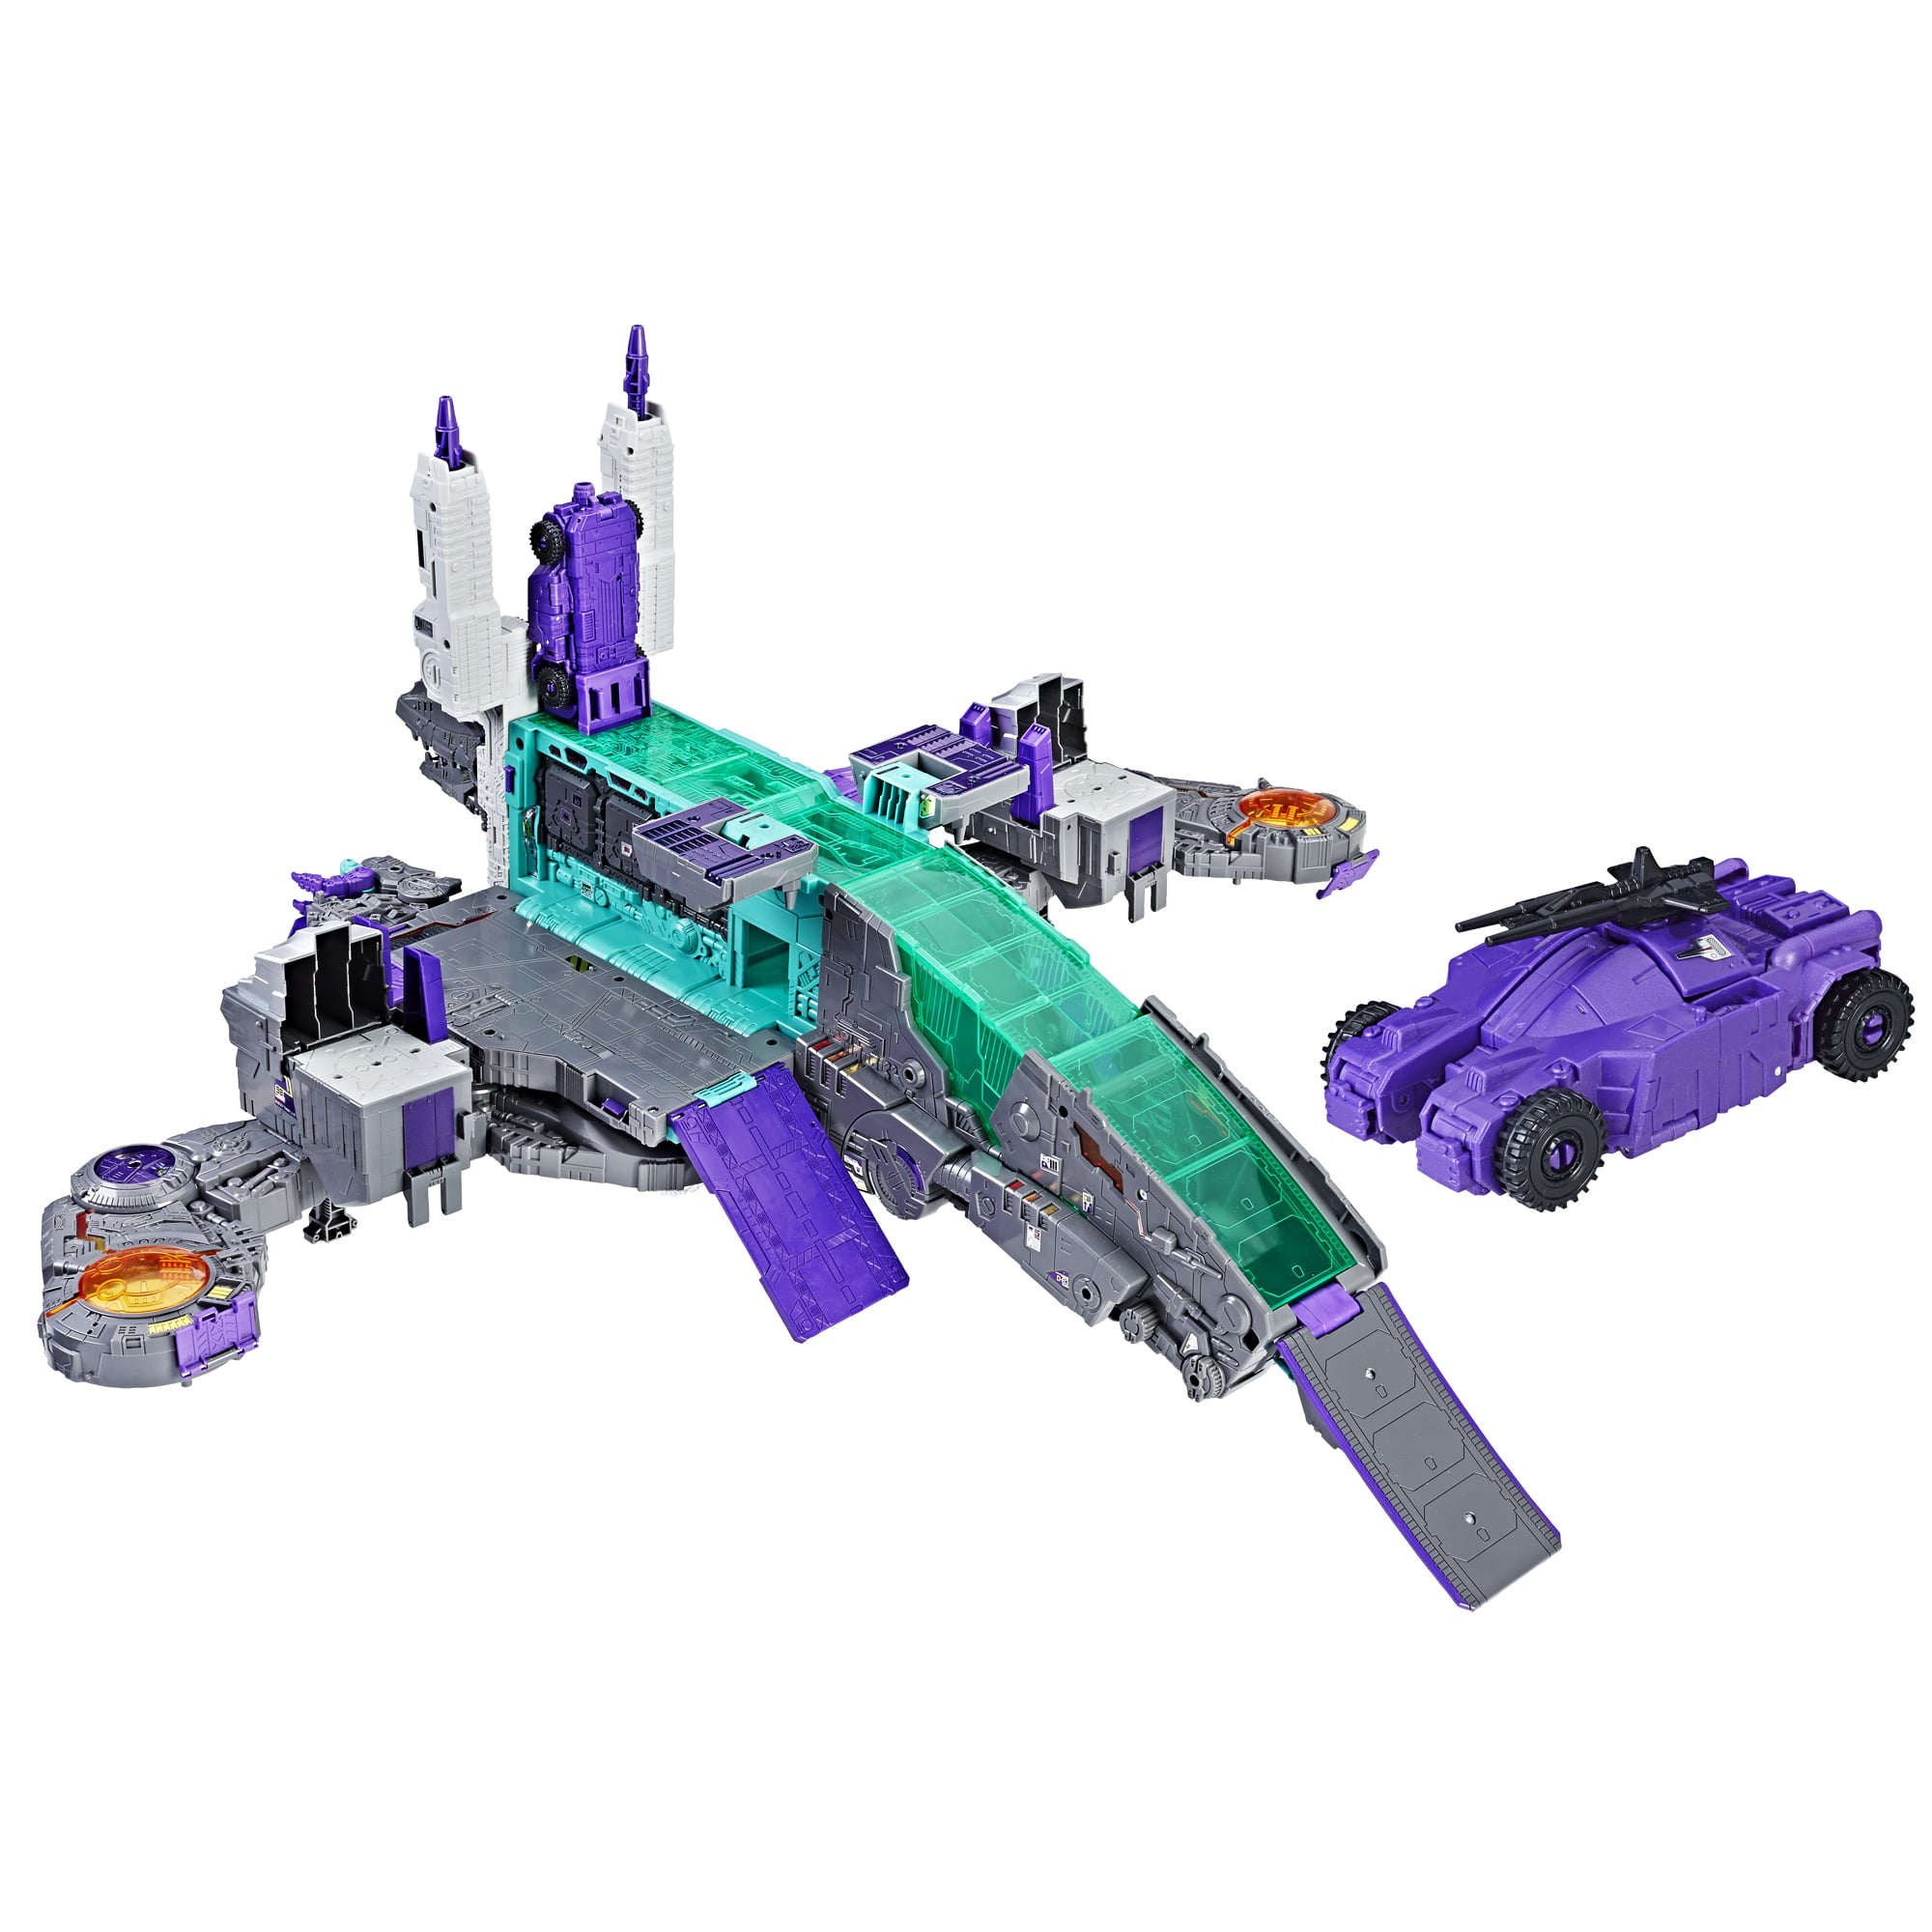 Transformers Generations Titans Return Titan Class Trypticon by Hasbro